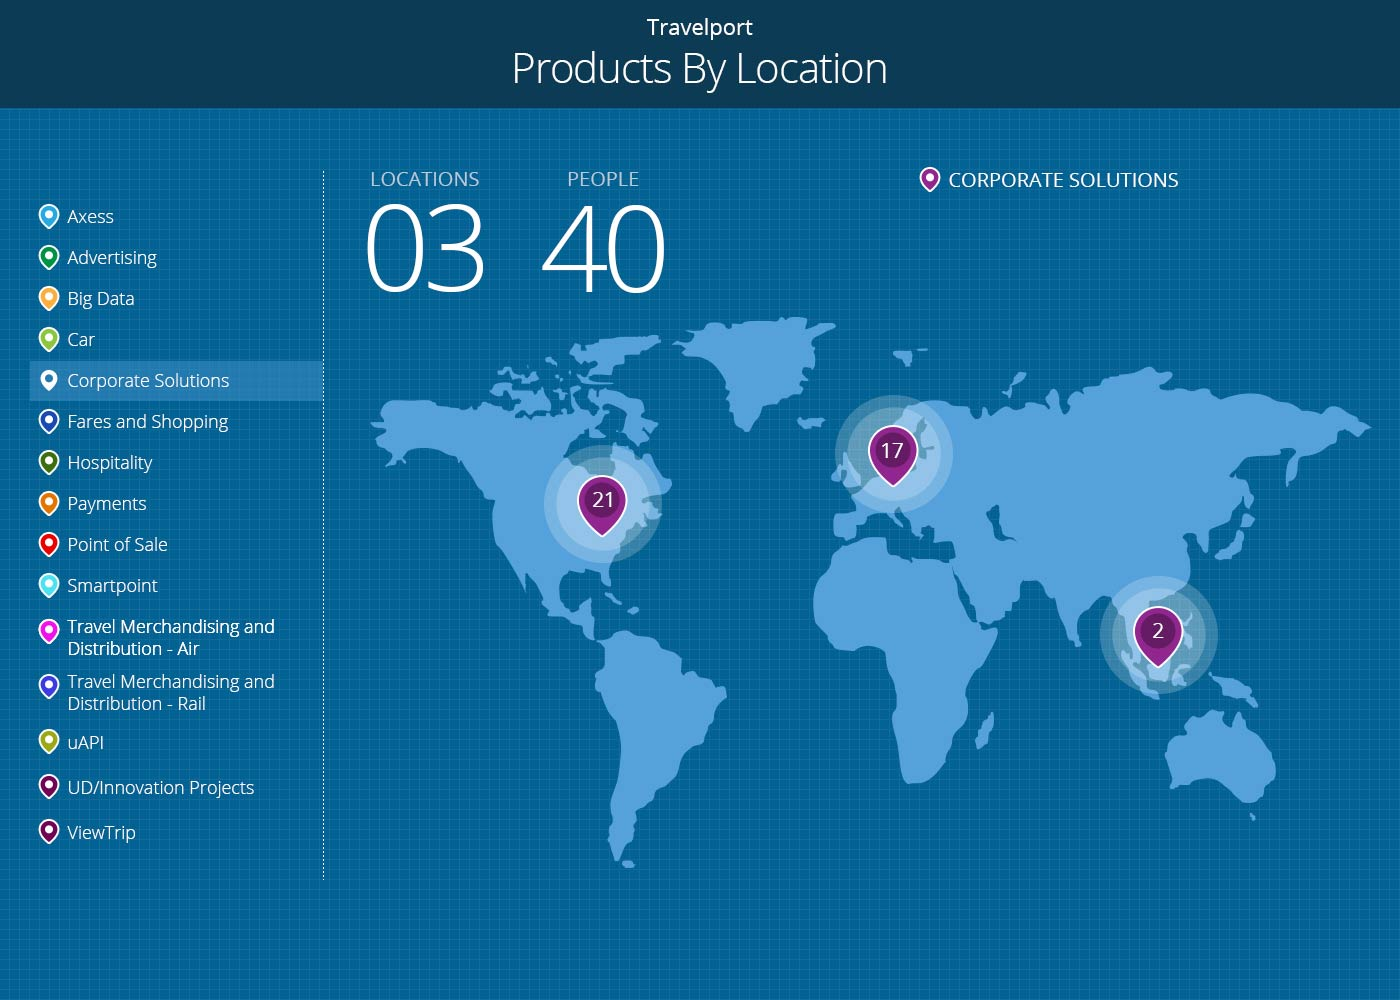 Products By Location Product Locations